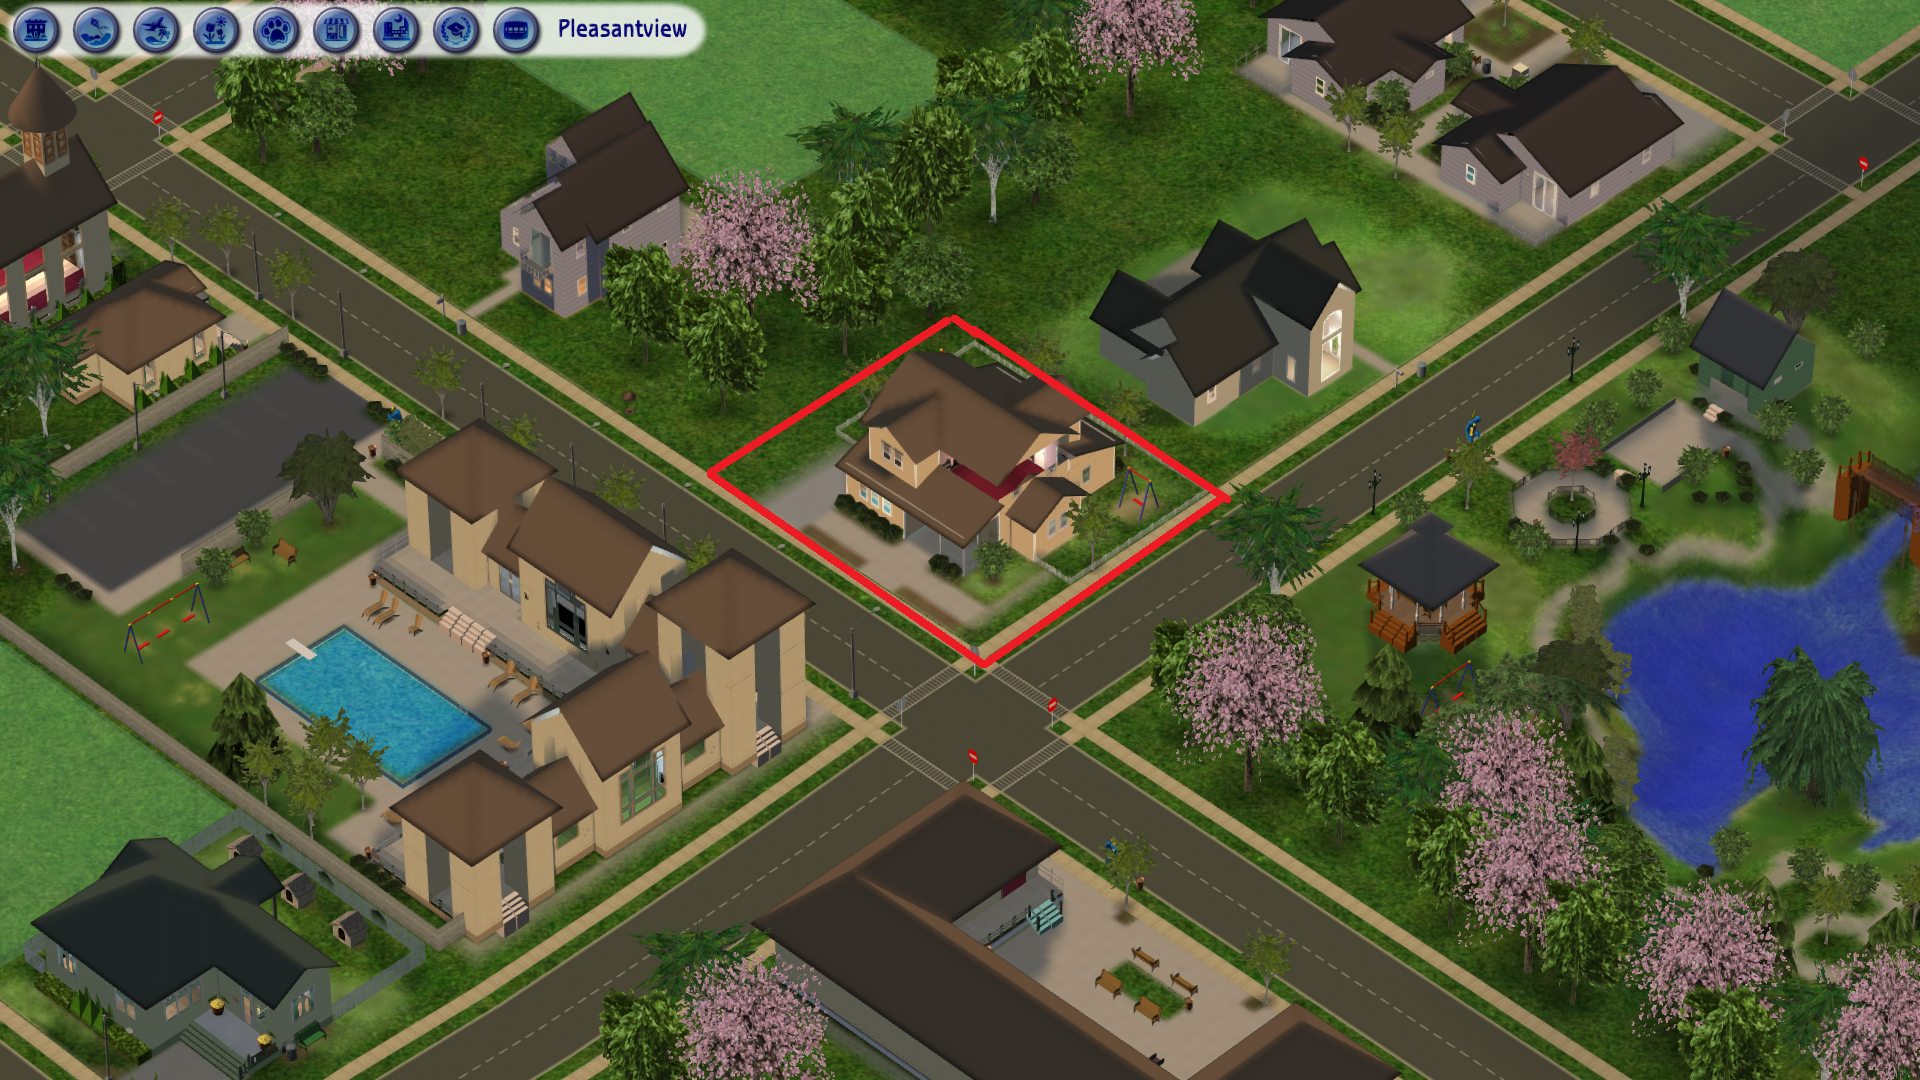 Sims 2 Orphanage House Placement in Pleasantview